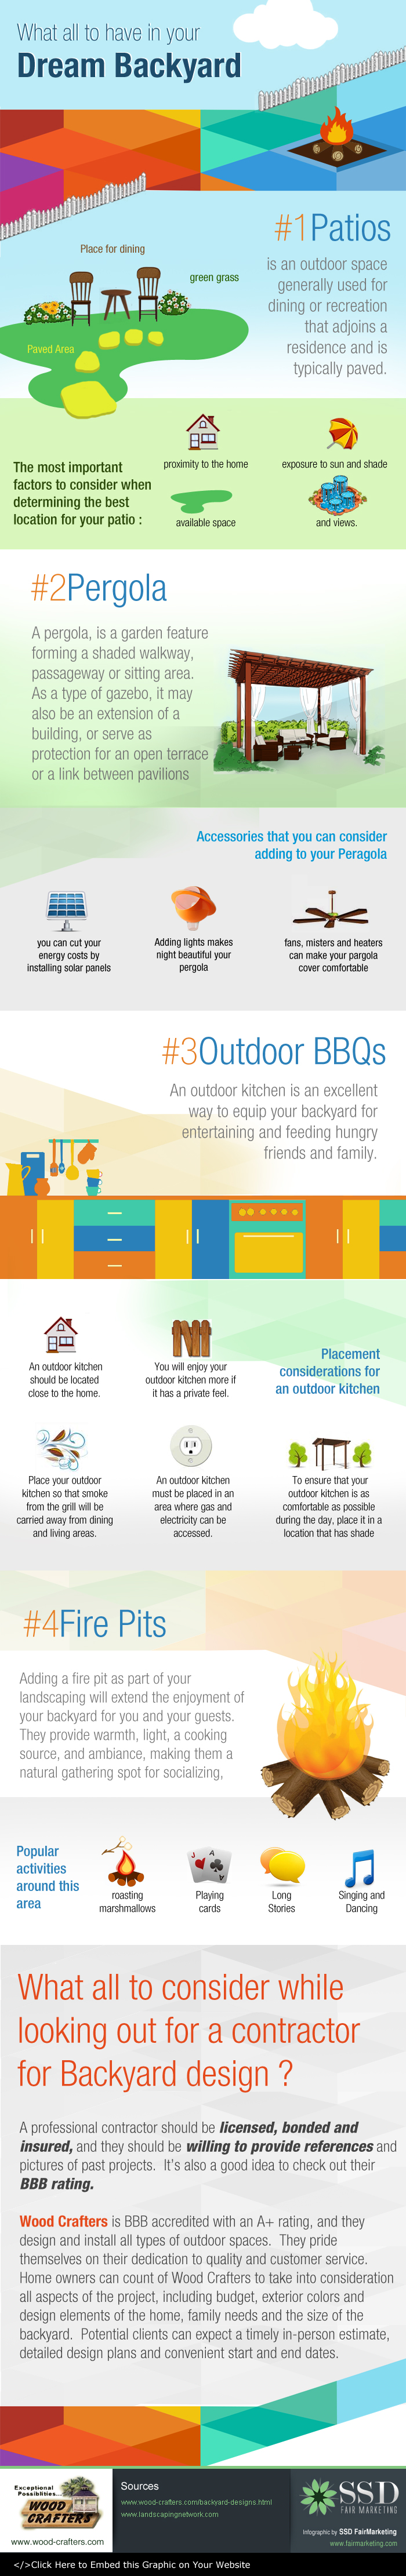 backyard design infographic